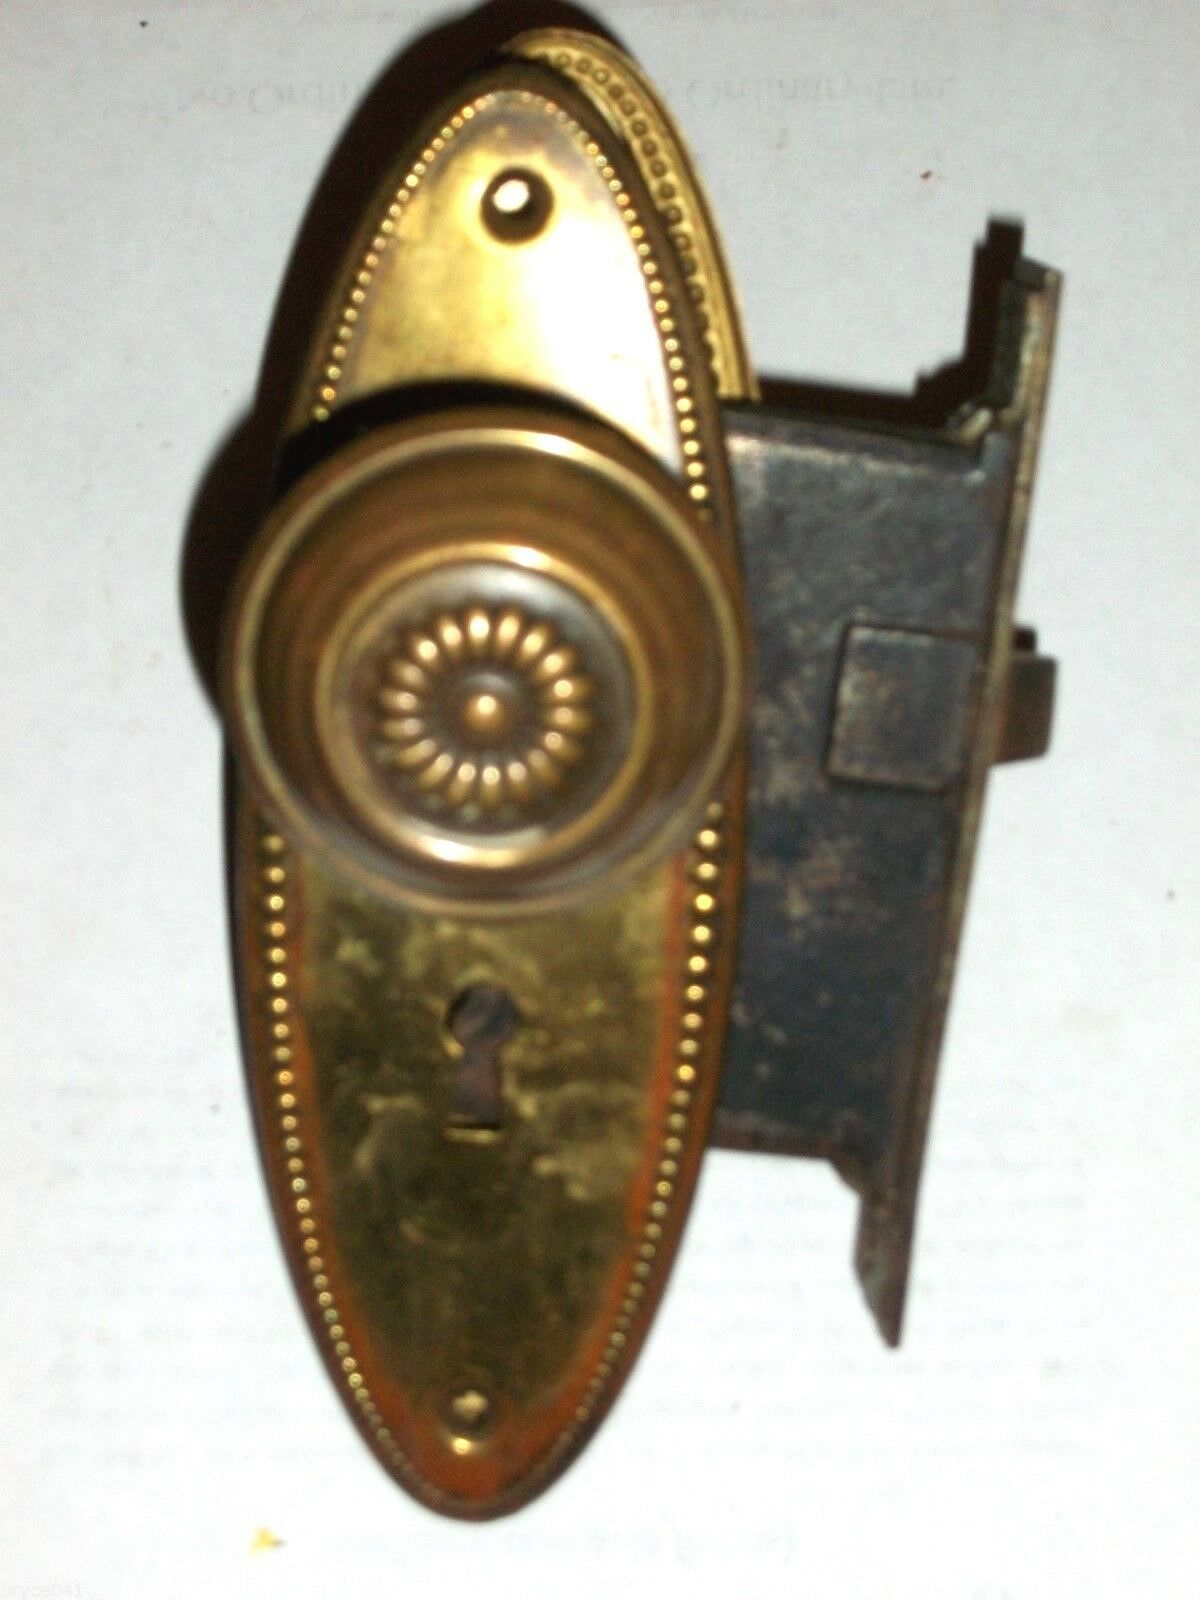 Antique Corbin Mortise Lock Egg and Dart Plates And Matching Knobs